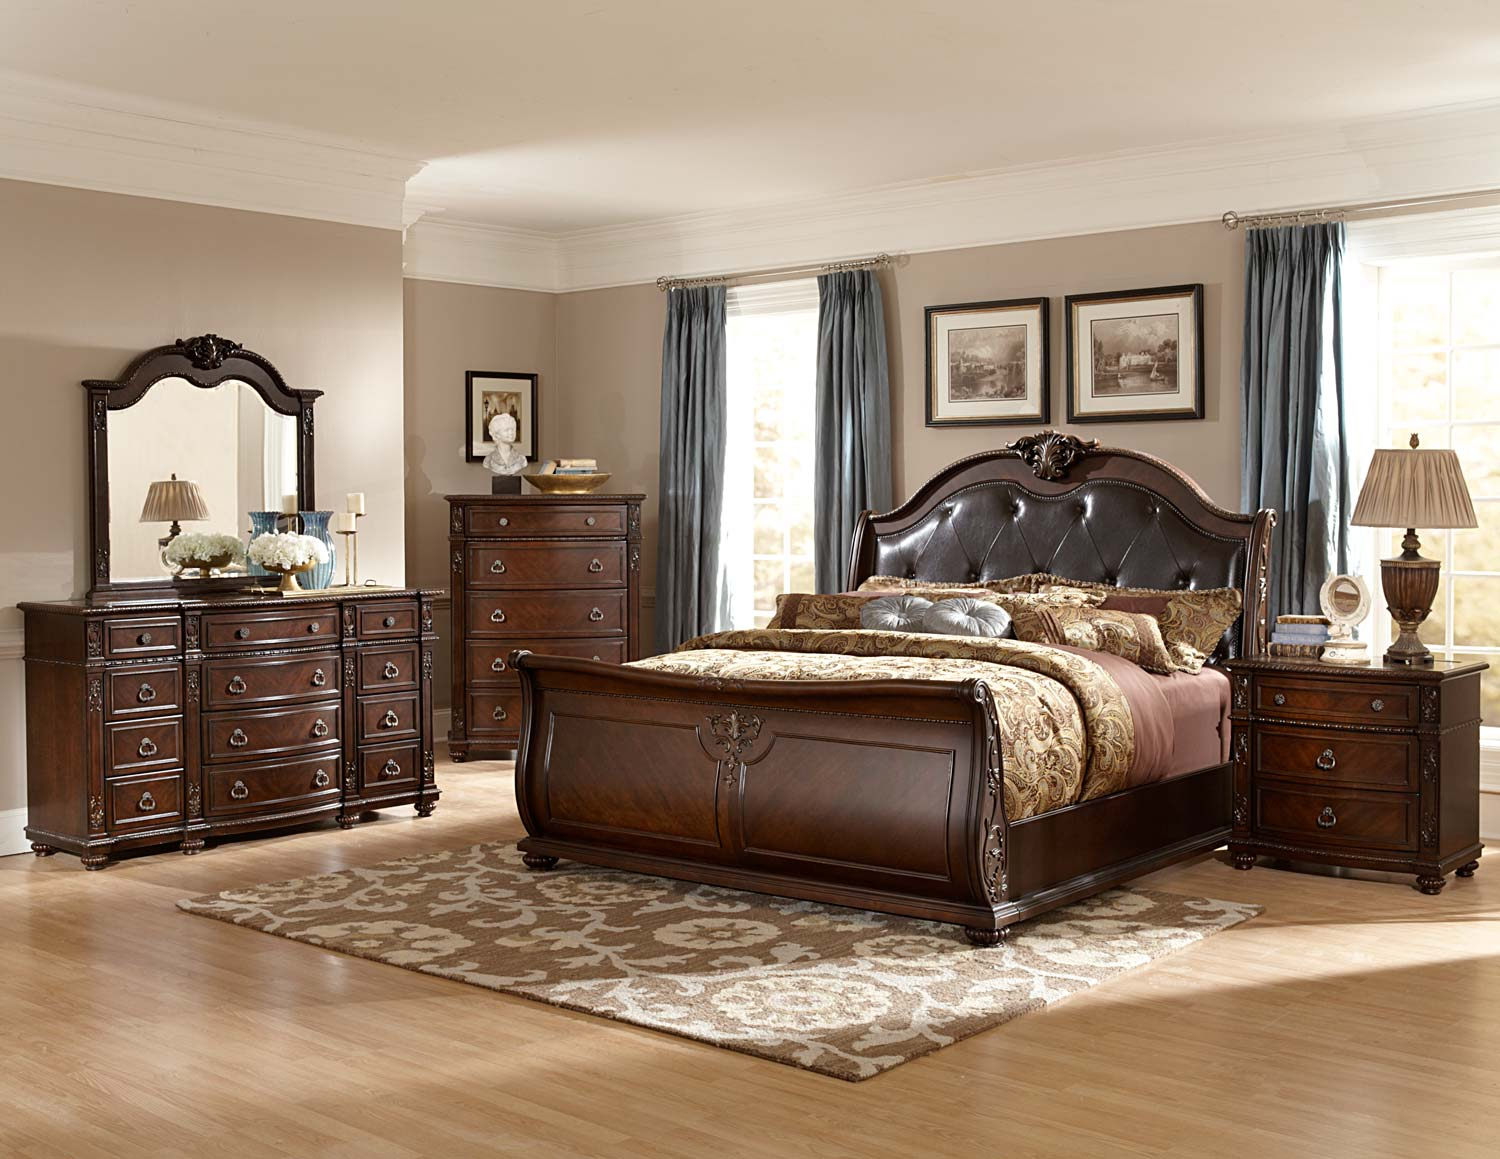 Homelegance hillcrest manor sleigh bedroom set cherry for Cherry wood bedroom furniture